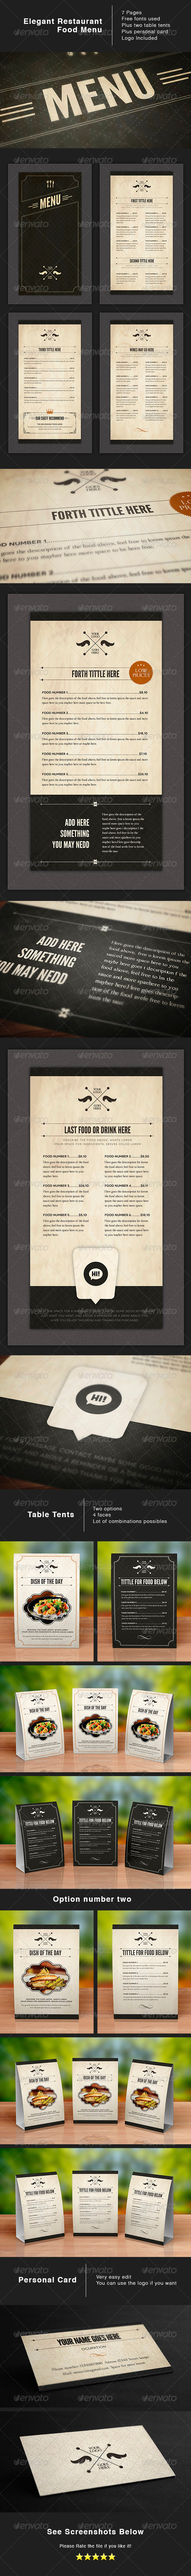 Design Food Stationery - Food Menus Print Templates